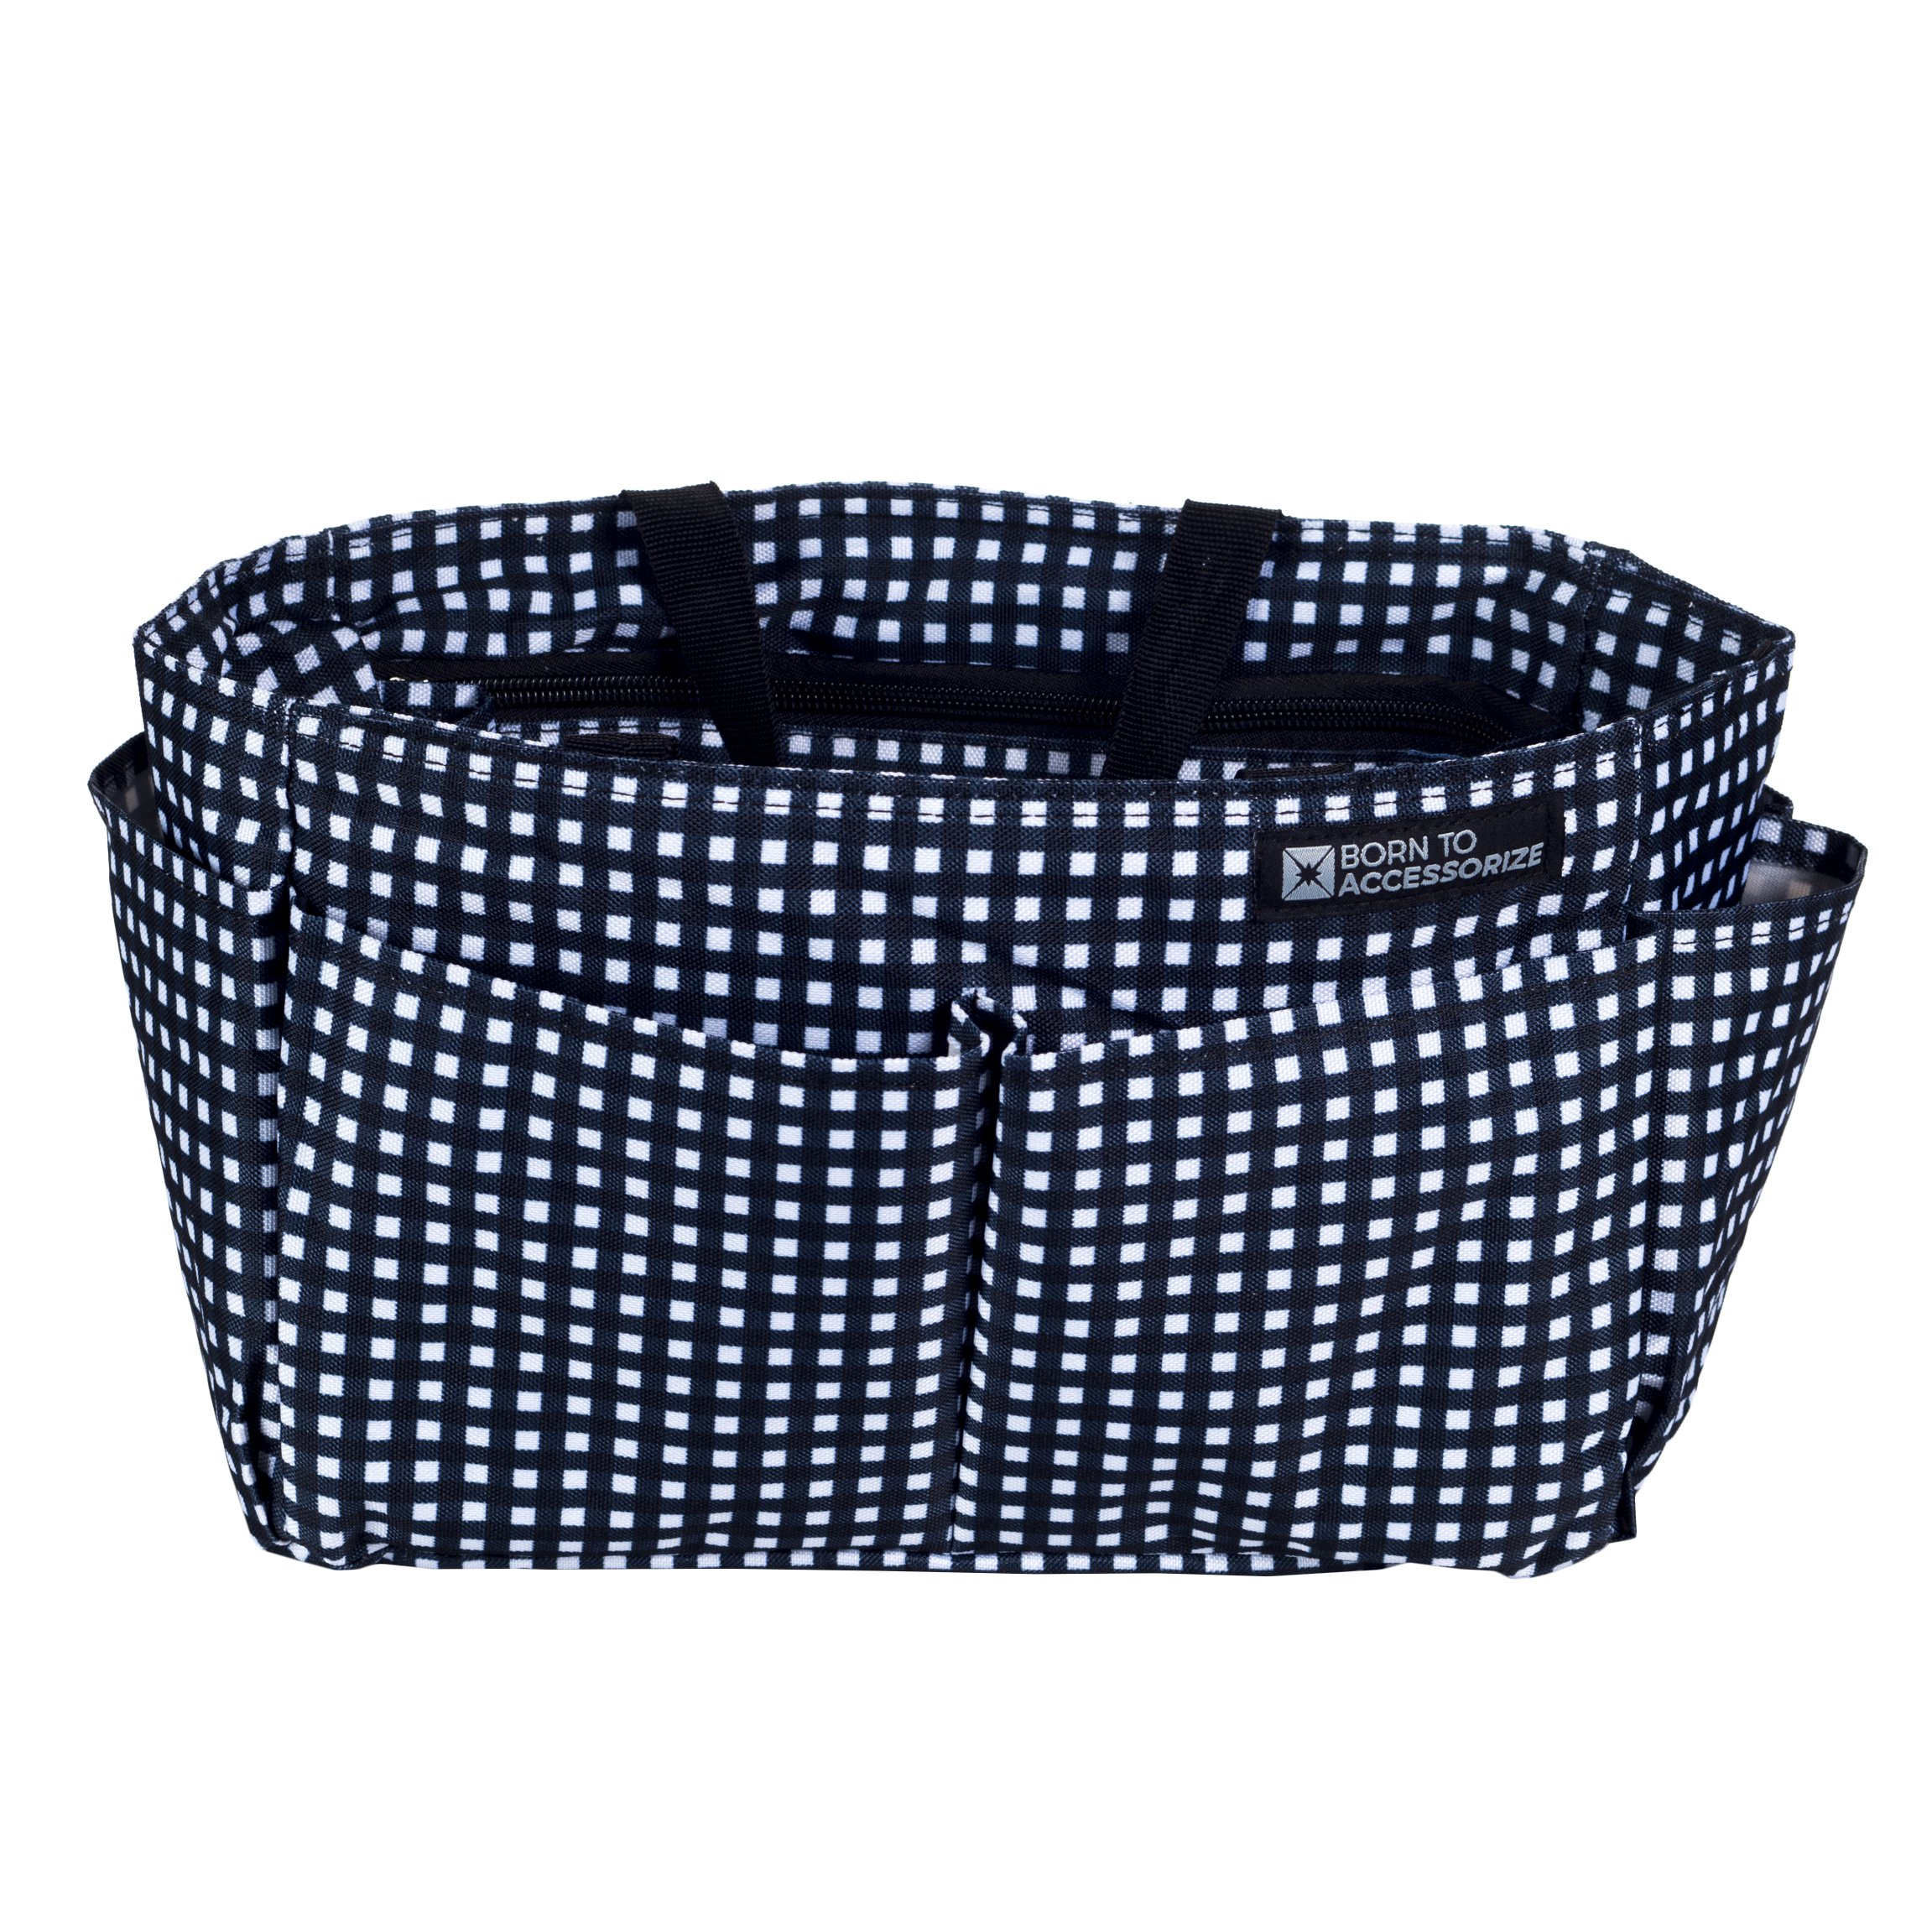 Premium Handbag Organizer - Perfect Purse Insert to Keep Everything Neat in Style (LV_L_Checkers)